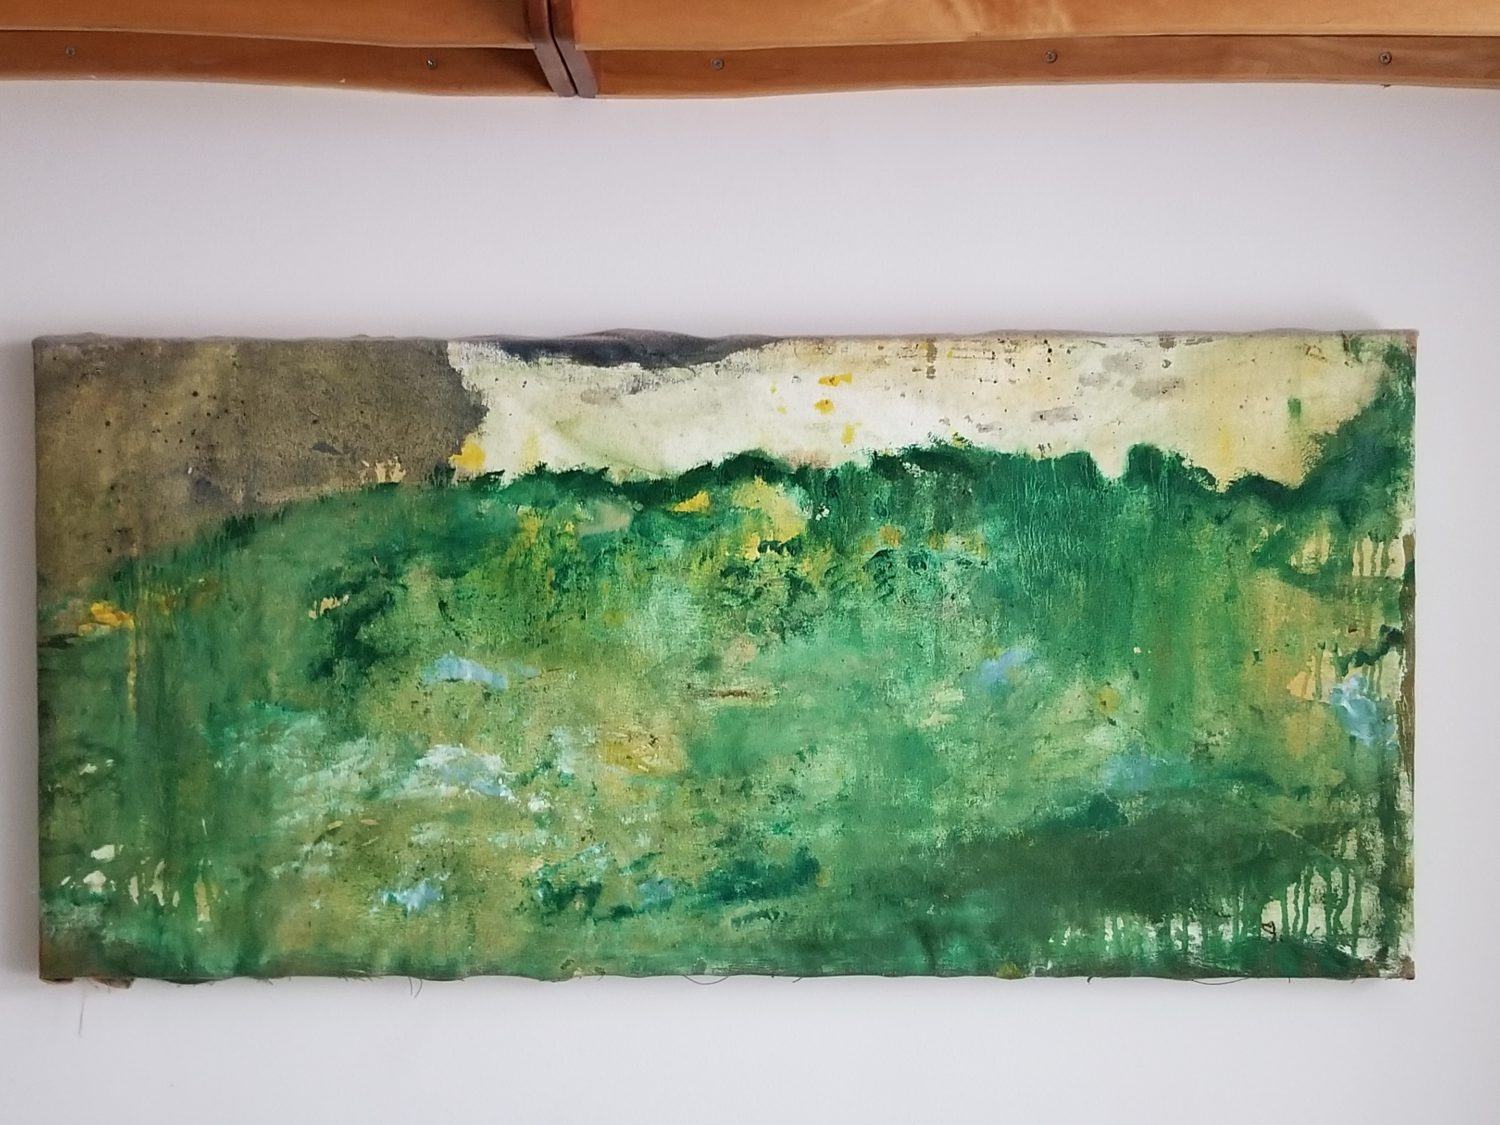 Long landscape oil painting on canvas by Jessie Mann